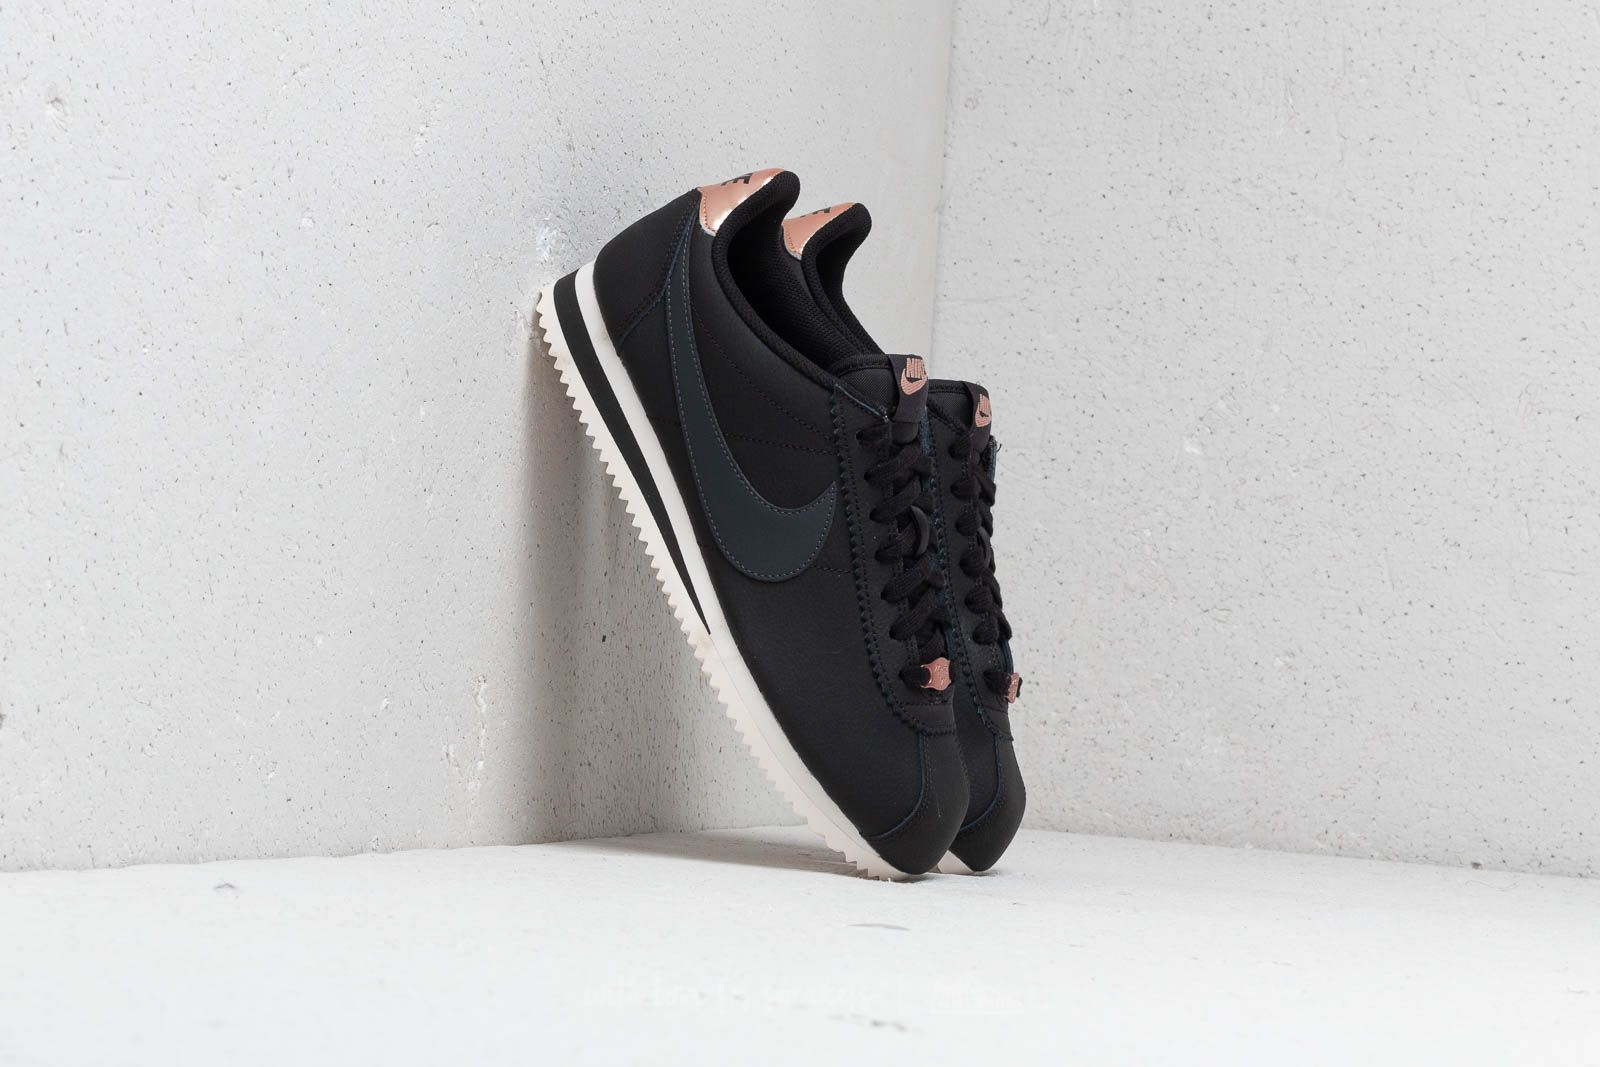 Nike Classic Cortez Leather Wmns Black/ Anthracite